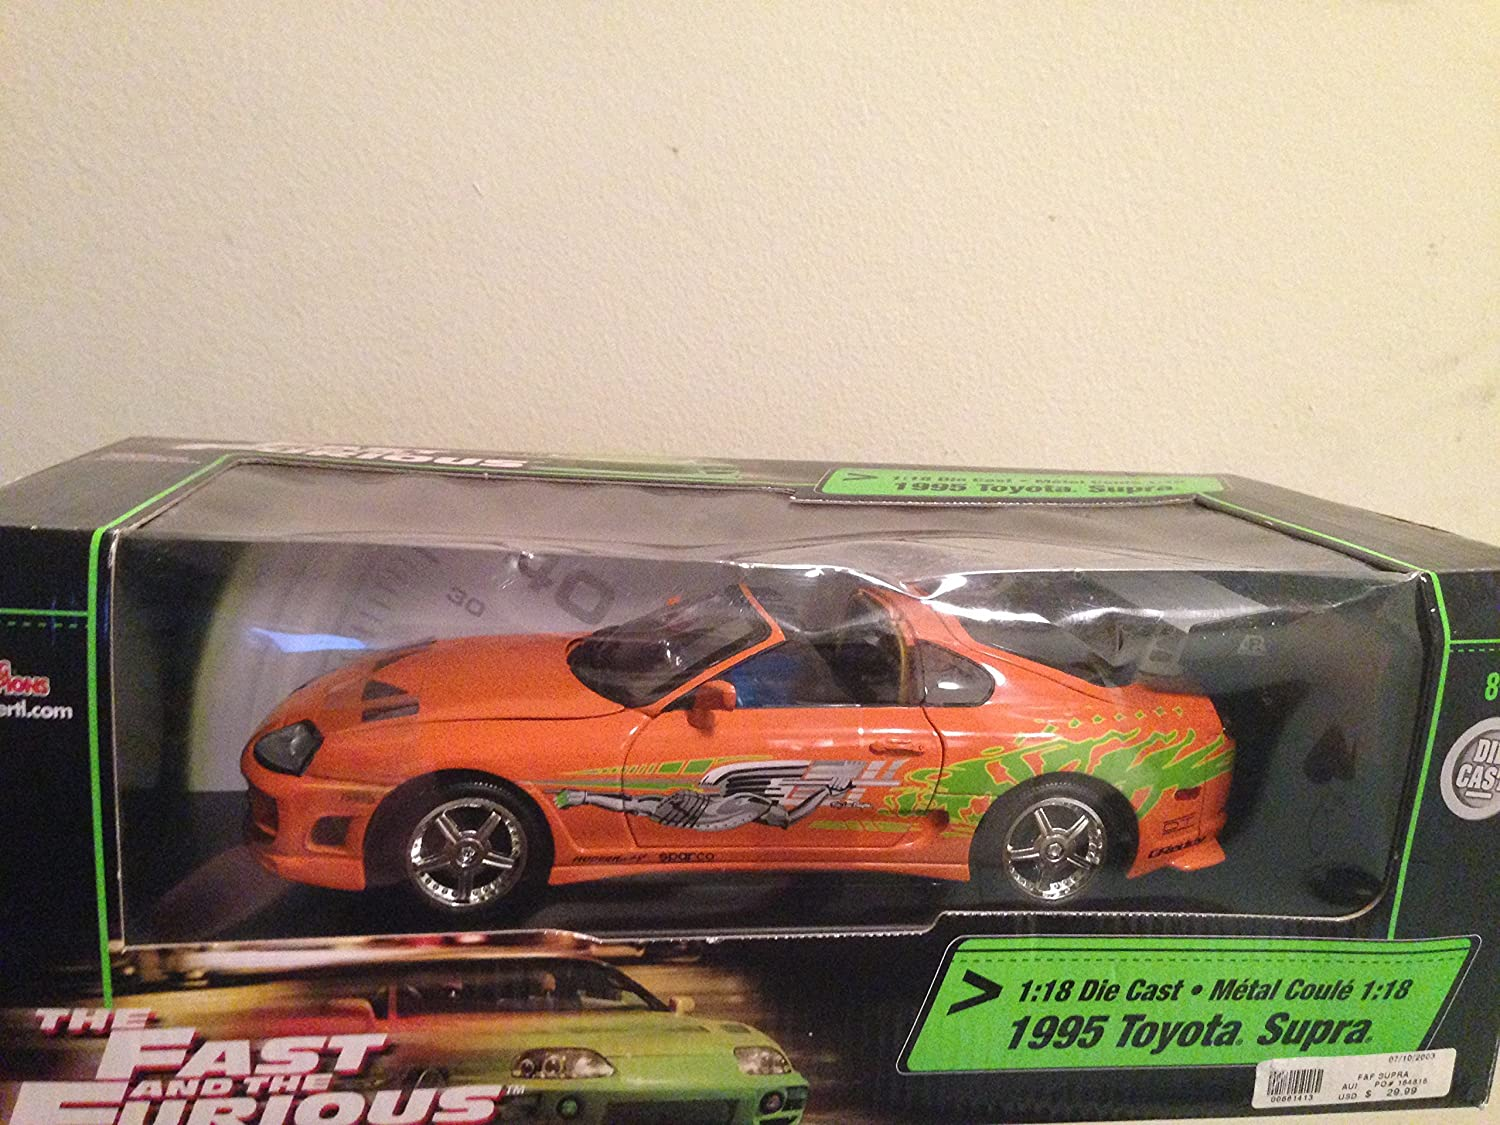 1995 Toyota Supra diecast model car The Fast and the Furious 1:18 die cast by Ertl Orange